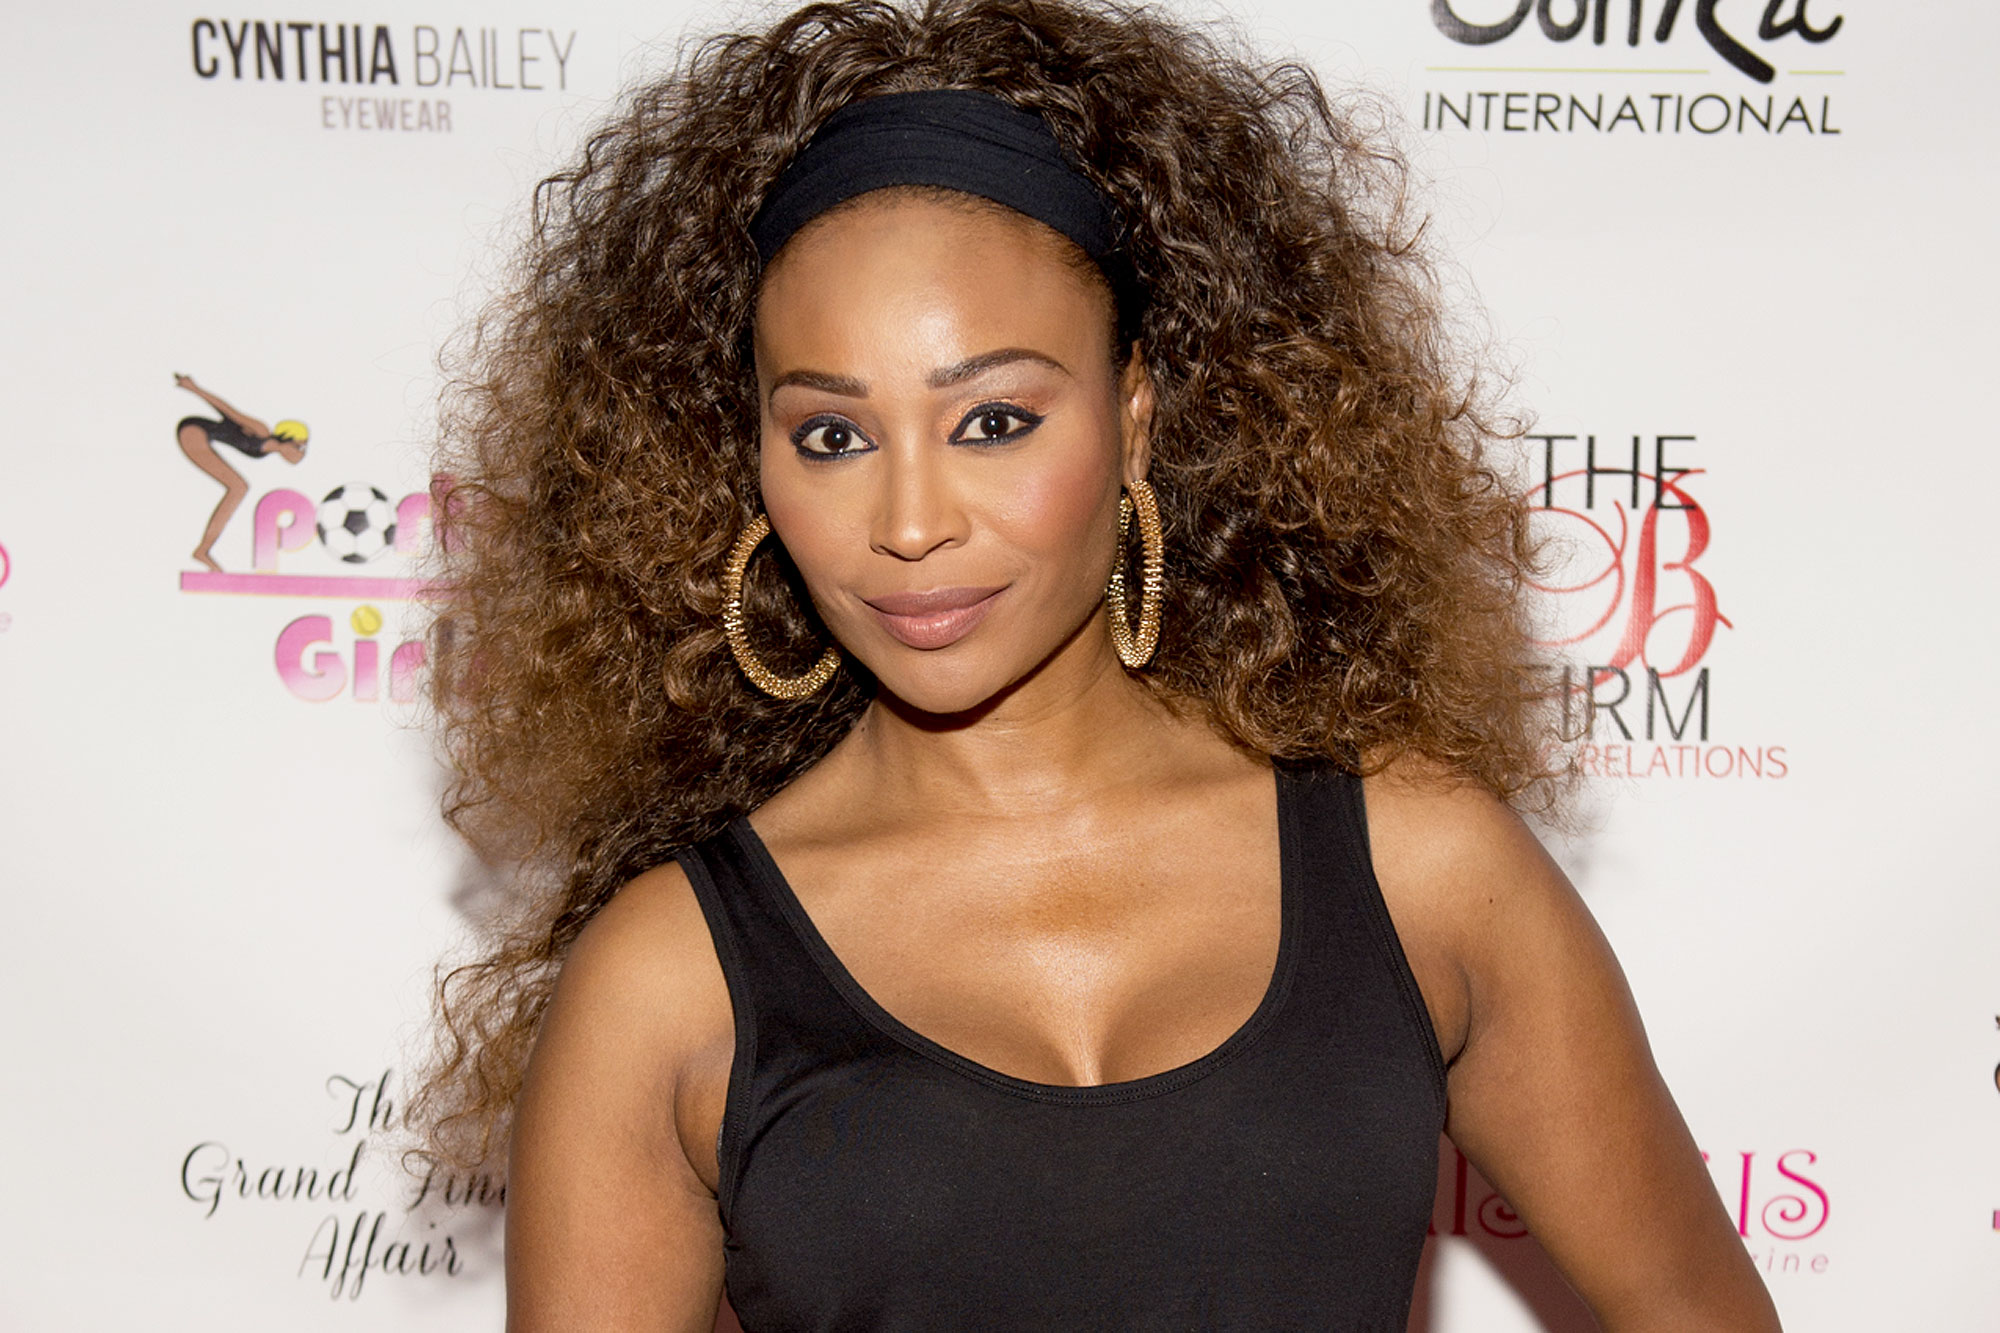 Cynthia Bailey's Fans Cannot Wait To See Their Favorite Star On RHOA This Sunday